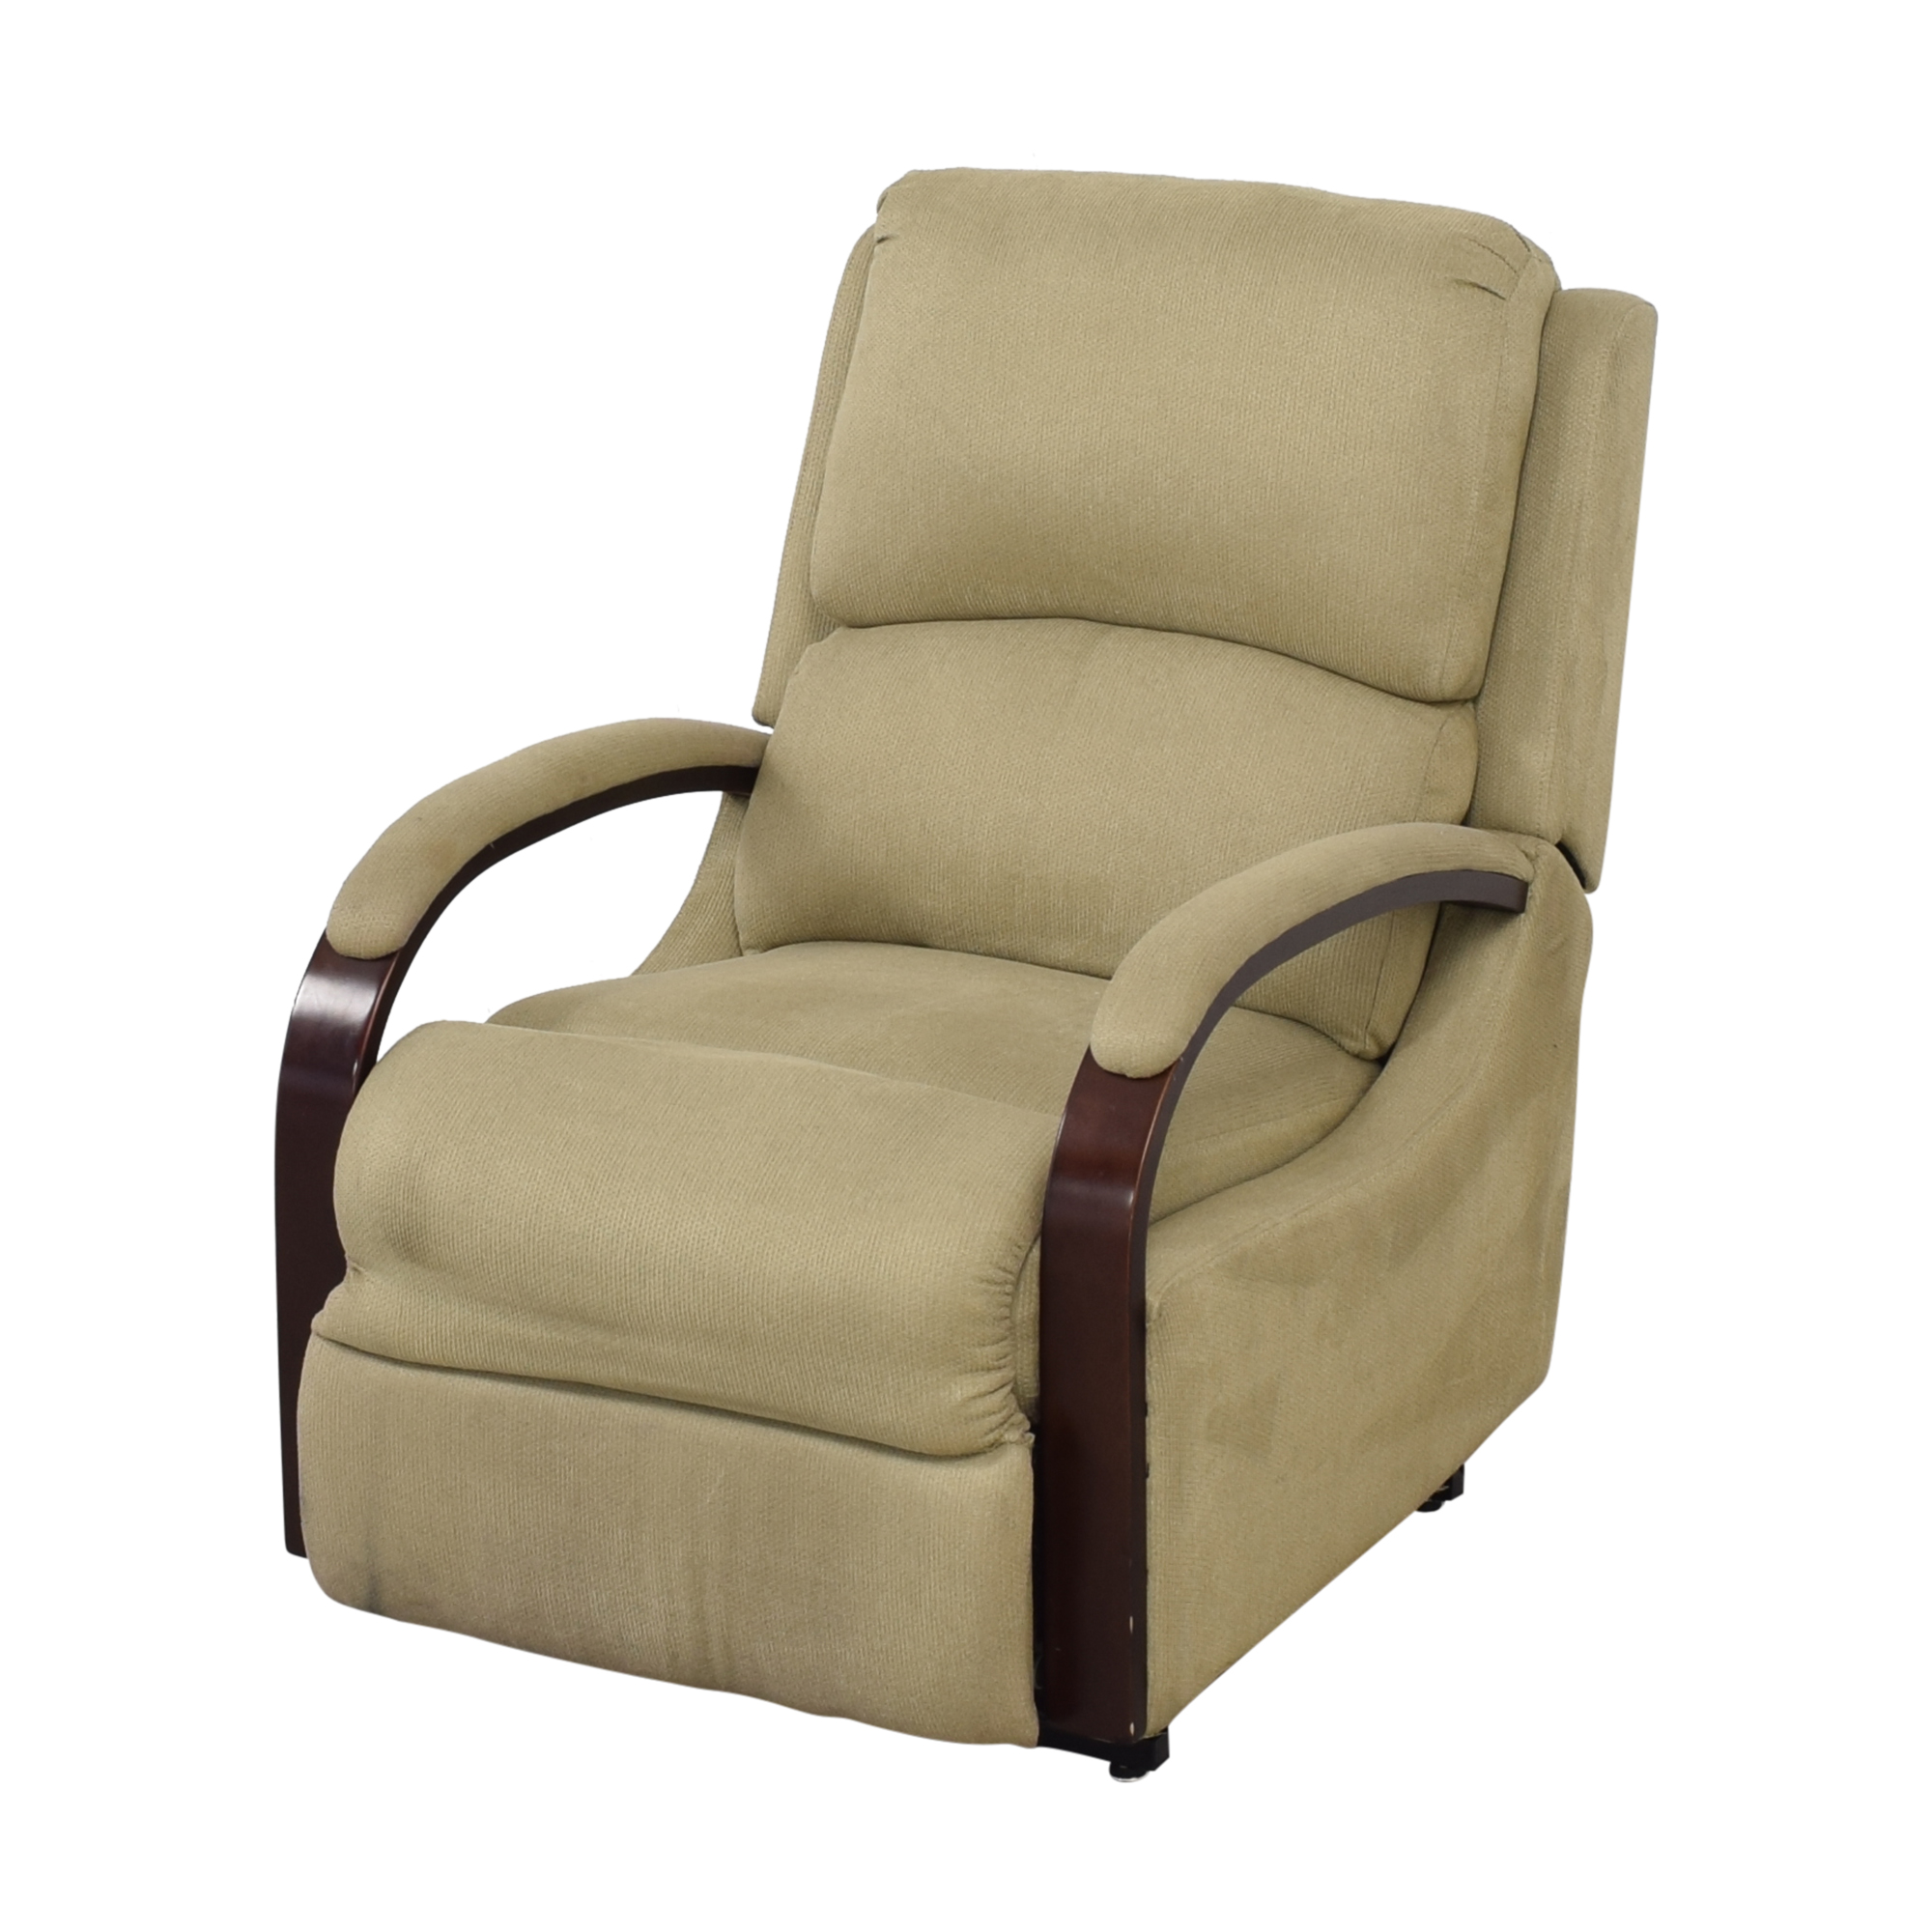 Macy's Macy's Power Lift Recliner Chair used